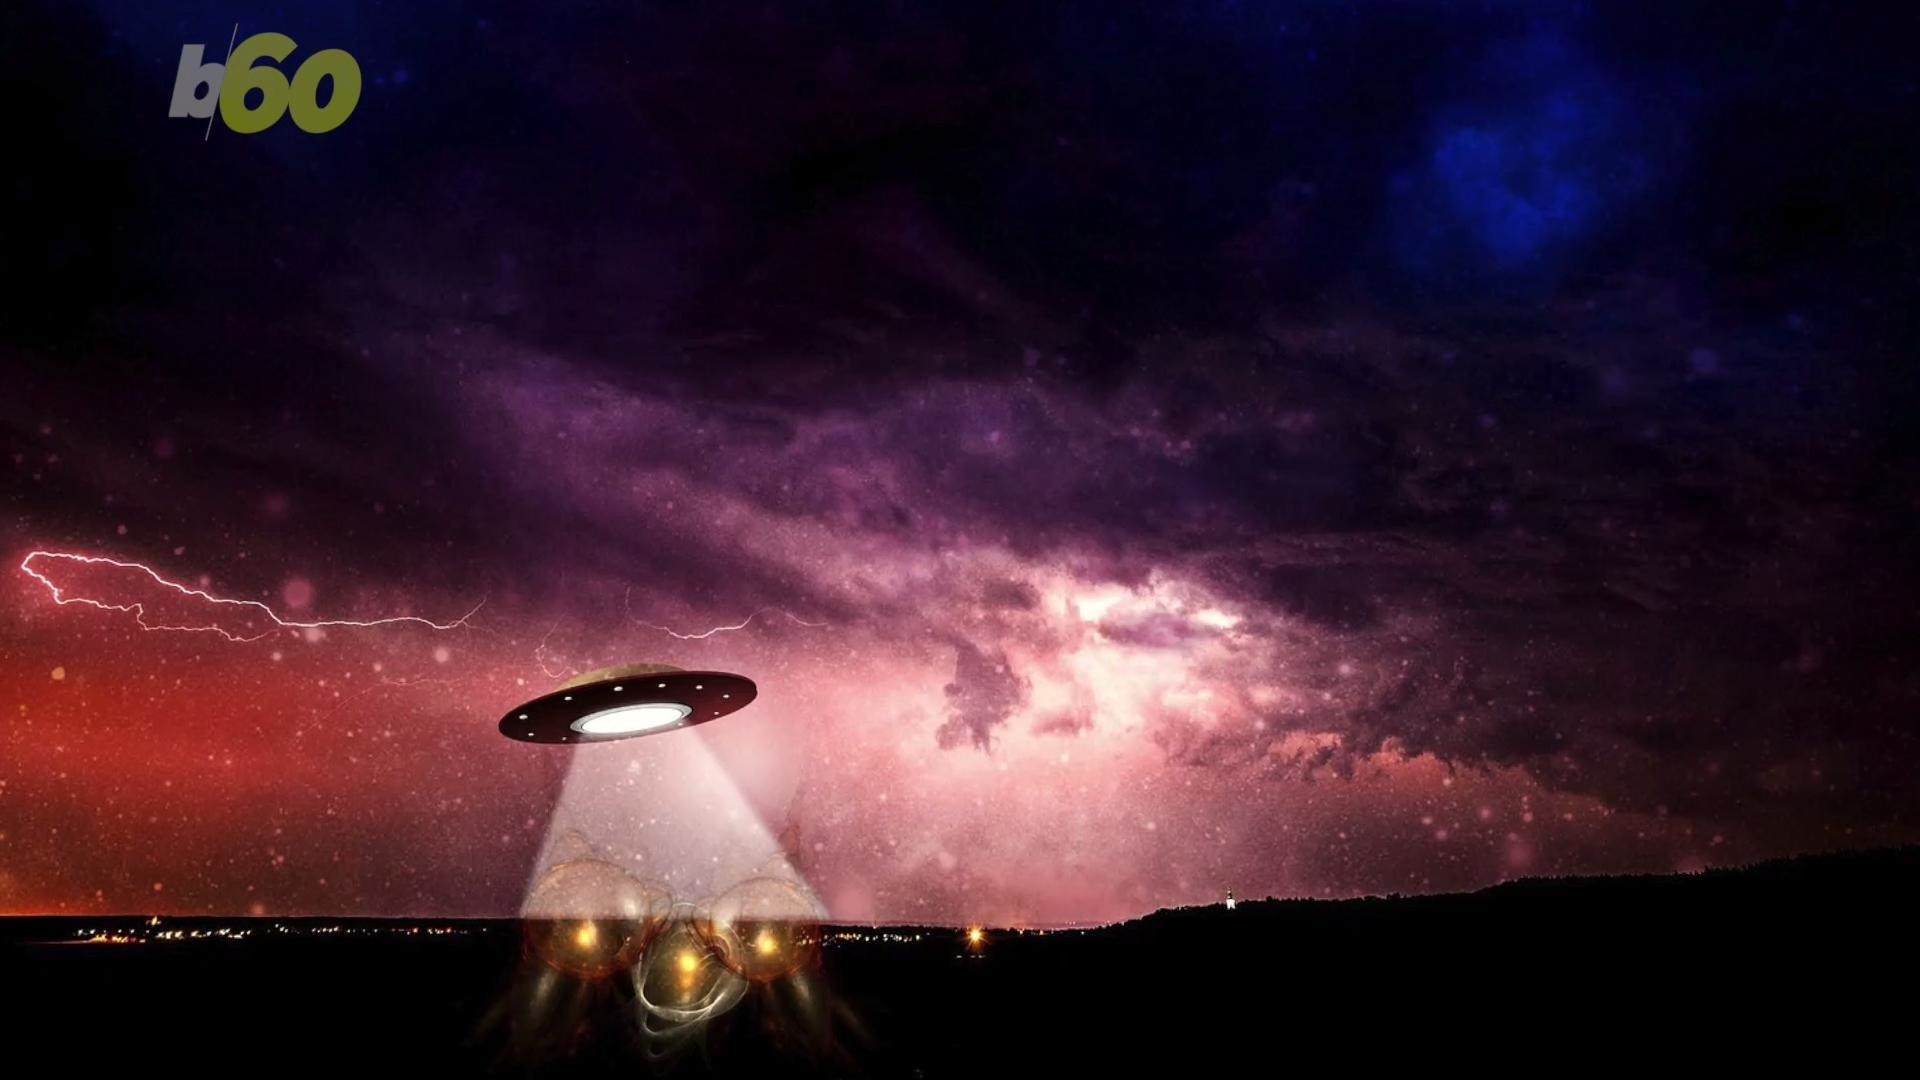 Amazing UFO Pictures & Backgrounds